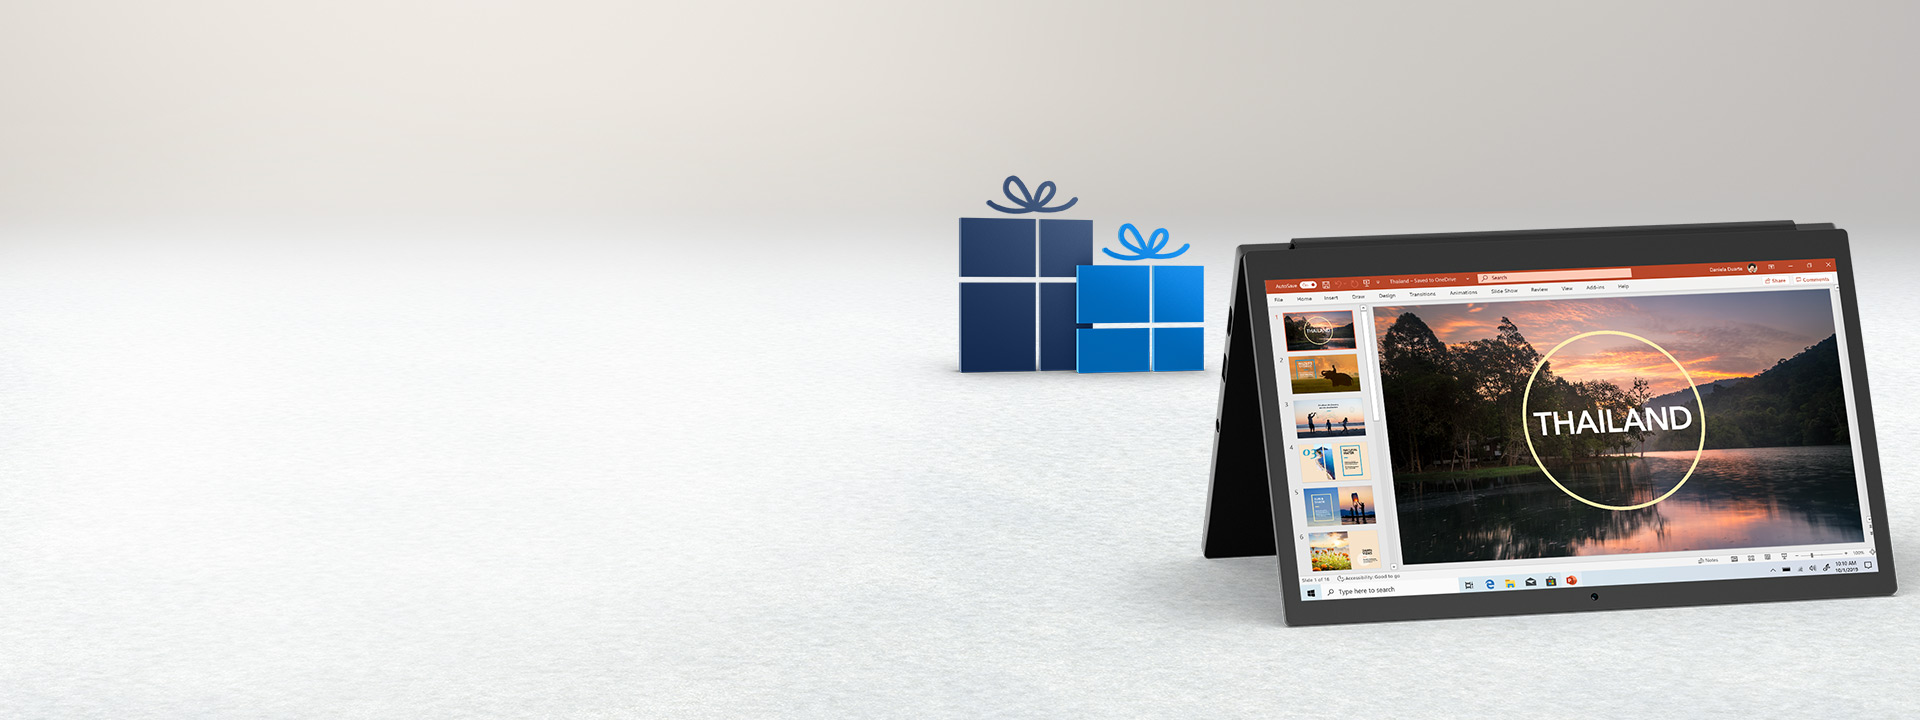 A PC surrounded by a holiday scene with a PowerPoint document open